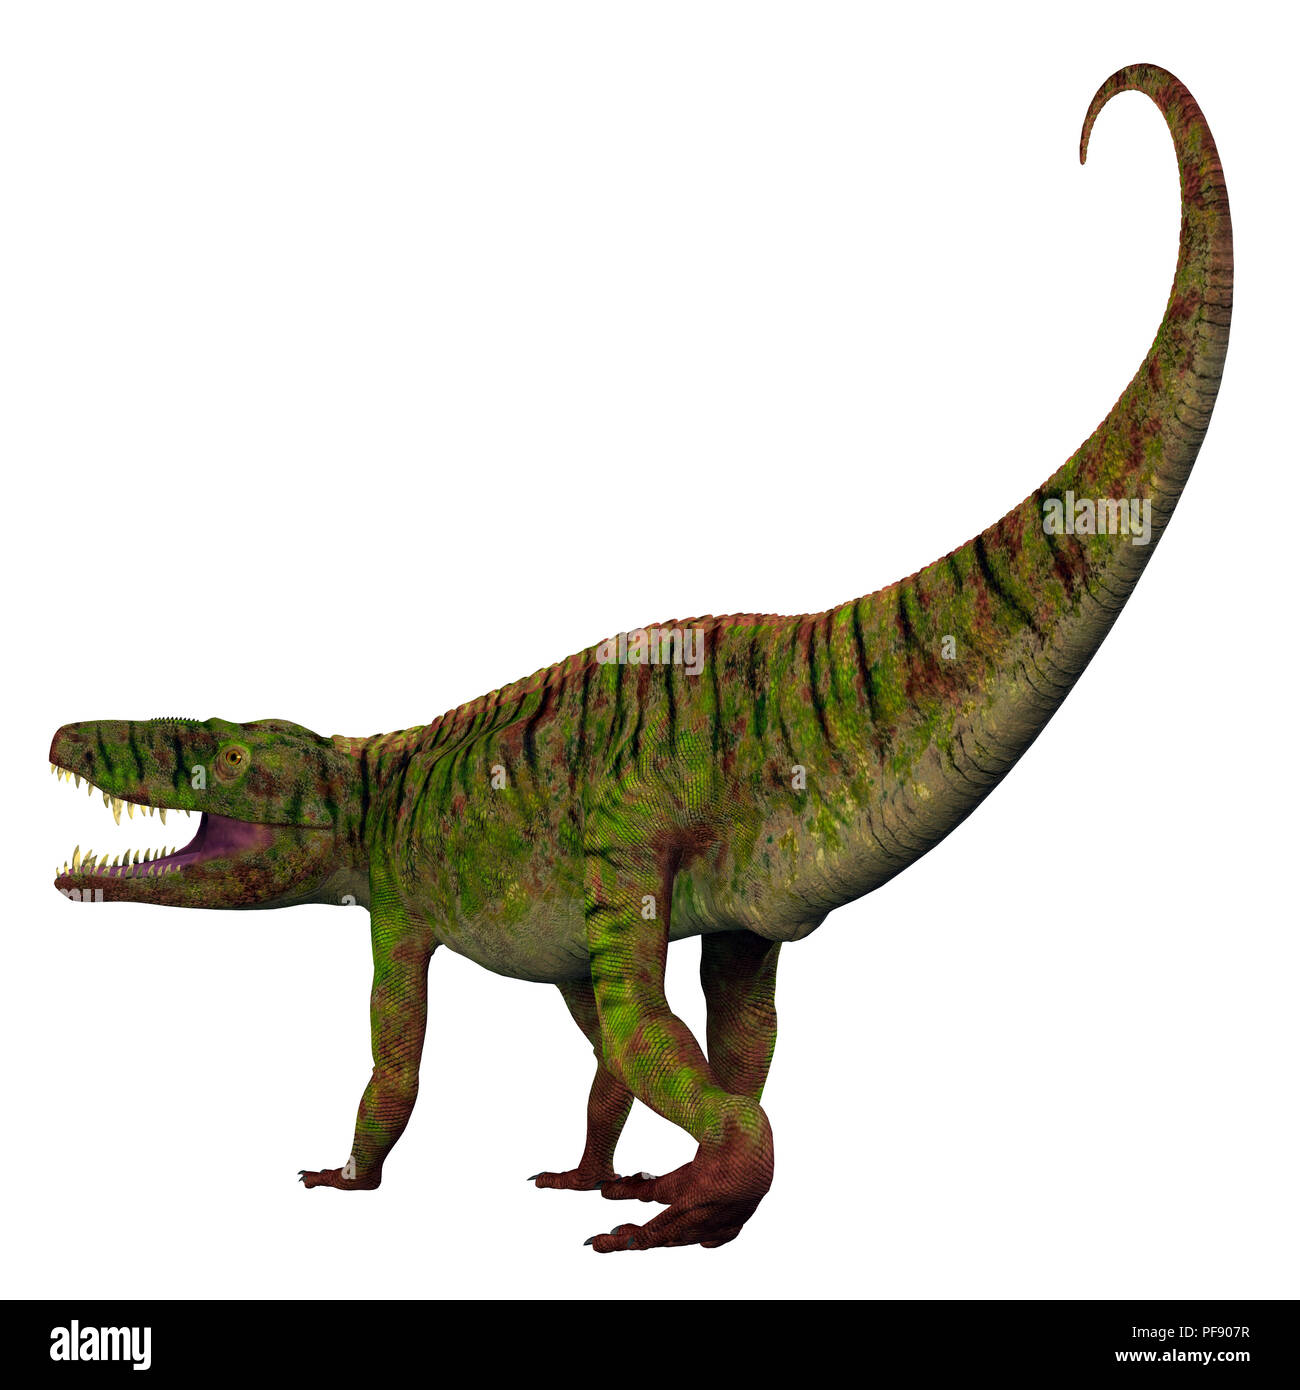 Batrachotomus Dinosaur - Batrachotomus was a carnivorous archosaur dinosaur that lived in Germany during the Triassic Period. - Stock Image